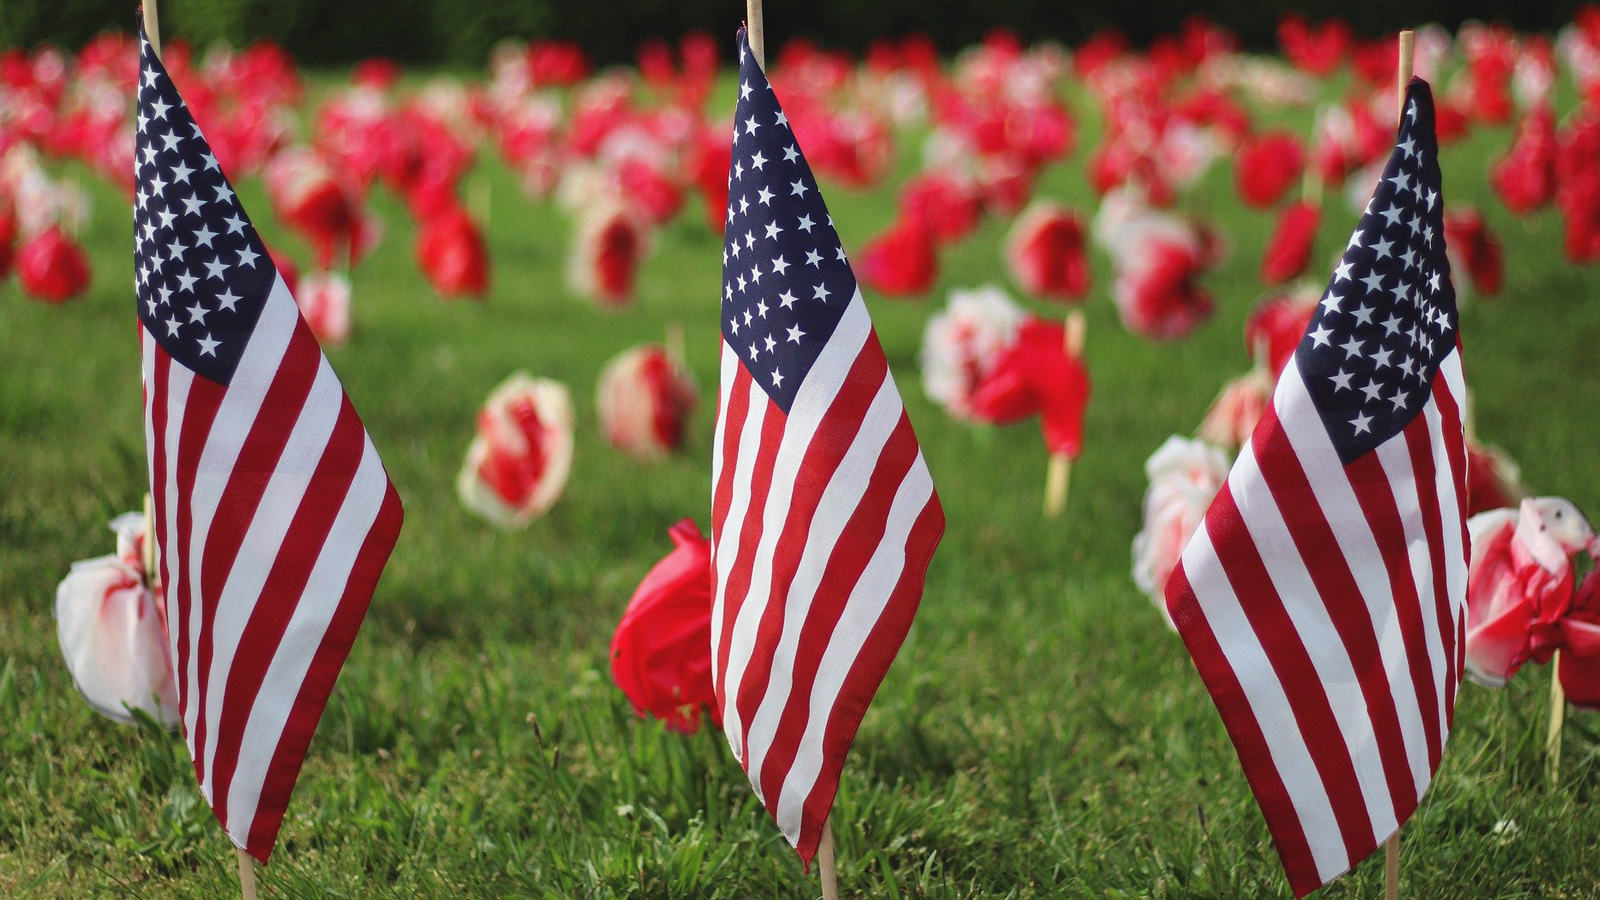 10 Tips for Commemorating Memorial Day Weekend During COVID-19